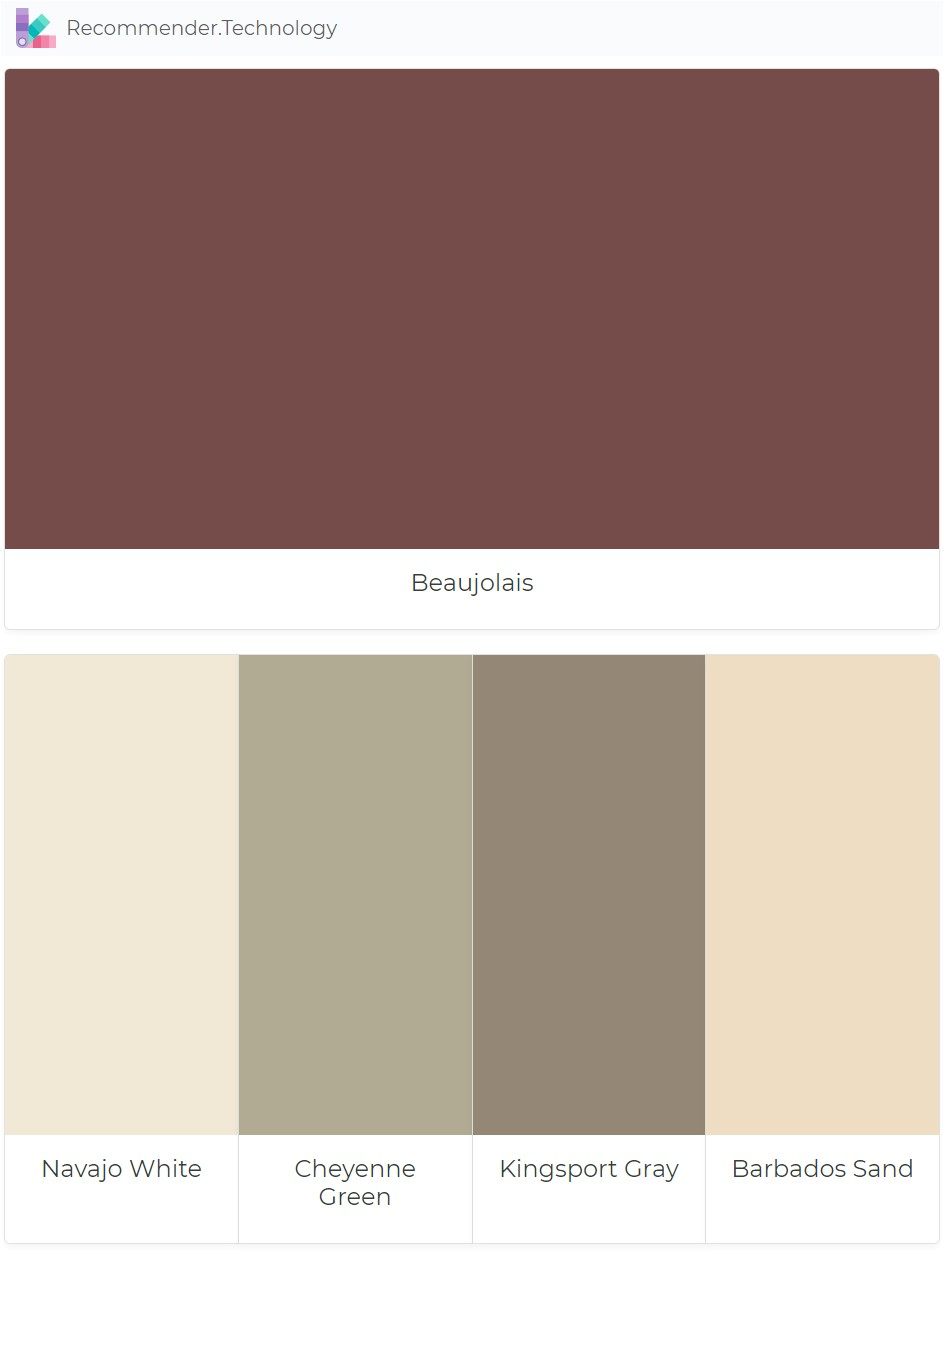 beaujolais navajo white cheyenne green kingsport gray barbados sand paint color palettes